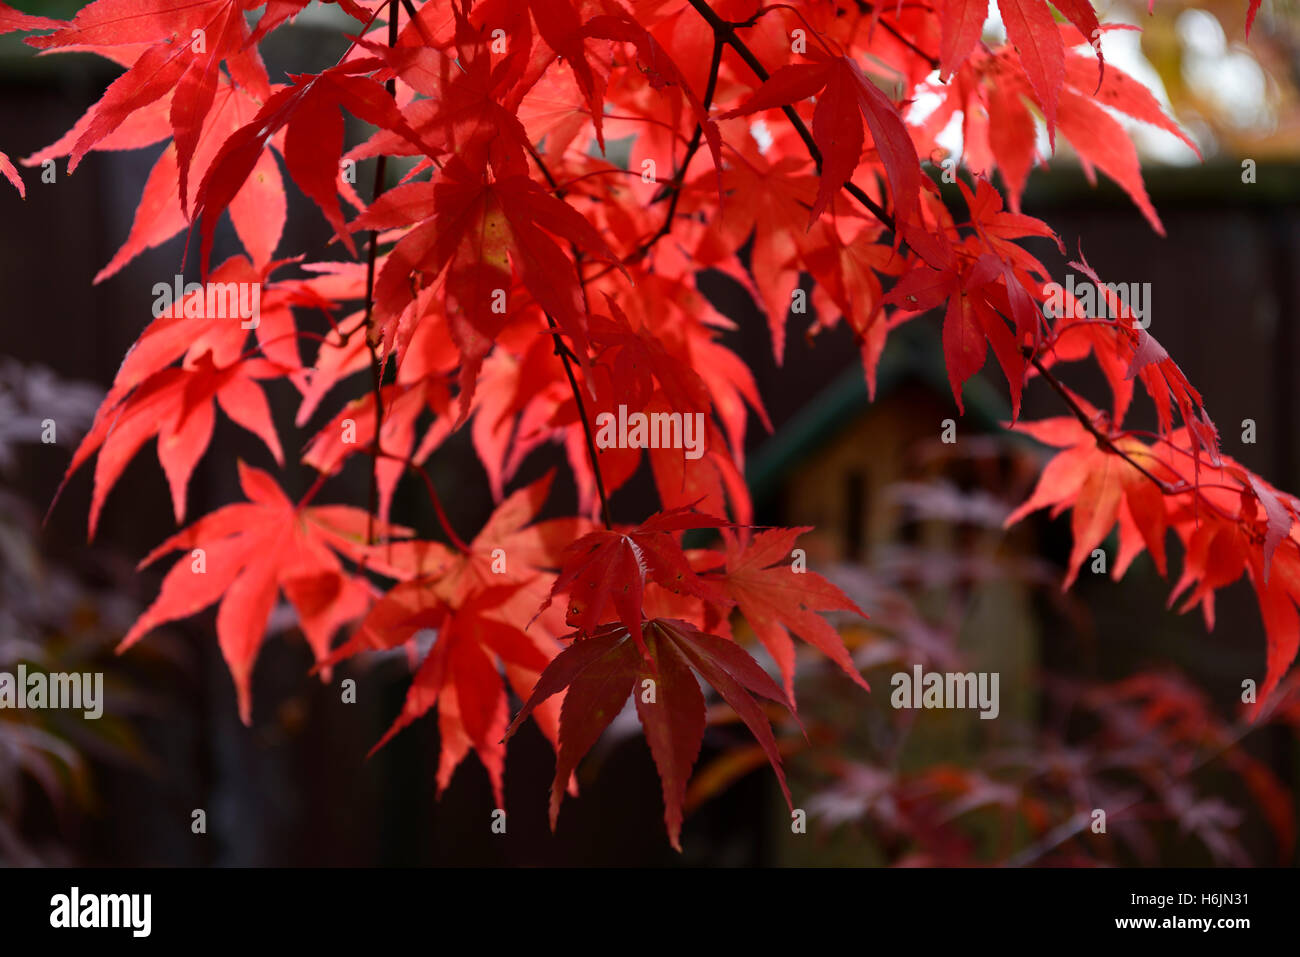 acer palmatum osakazuki stockfotos acer palmatum osakazuki bilder alamy. Black Bedroom Furniture Sets. Home Design Ideas